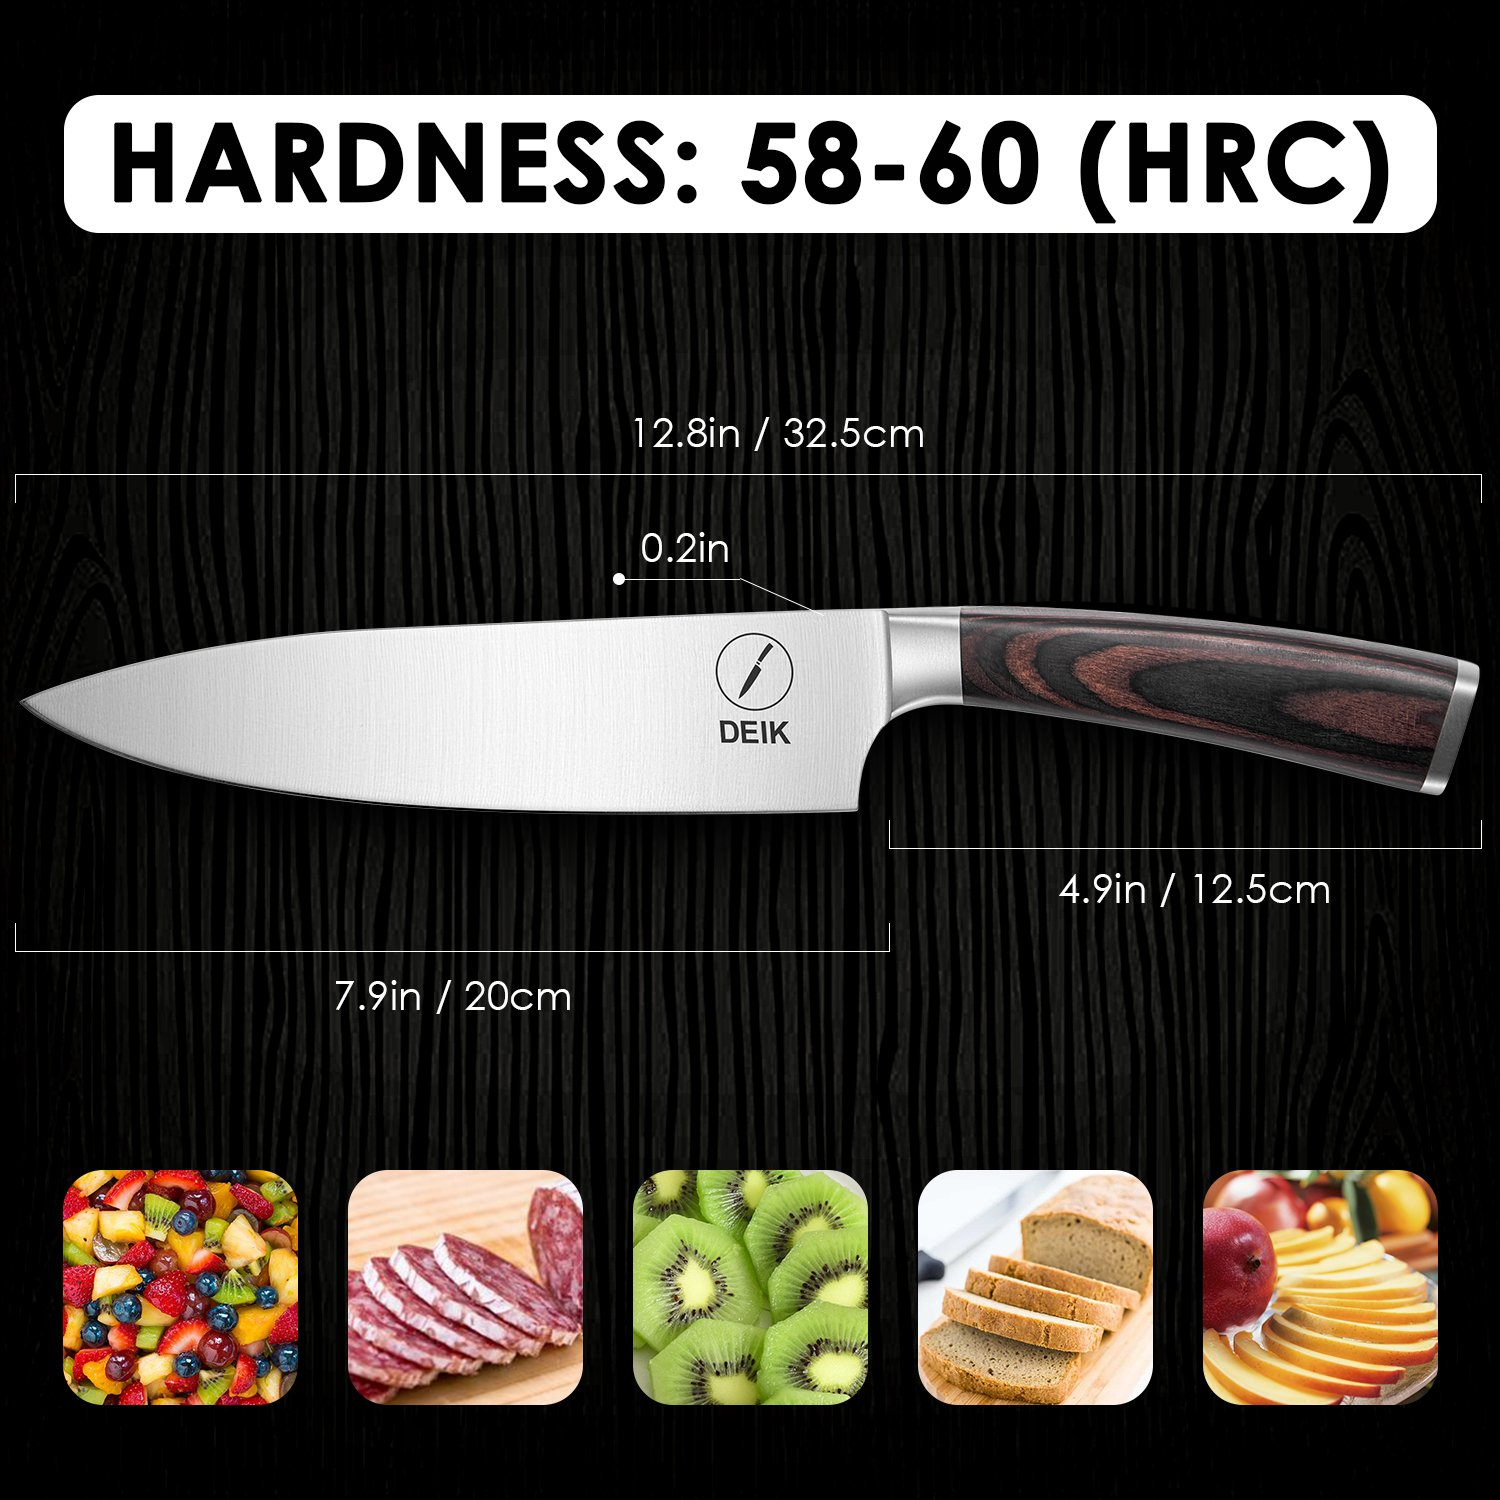 Deik Chef Knife, 8 Inch Kitchen Knife with 1.4116 Imported Stainless Steel, Professional Grade Balance and Super Sharp with Ergnonomic Classy Wooden Handle by Deik (Image #8)